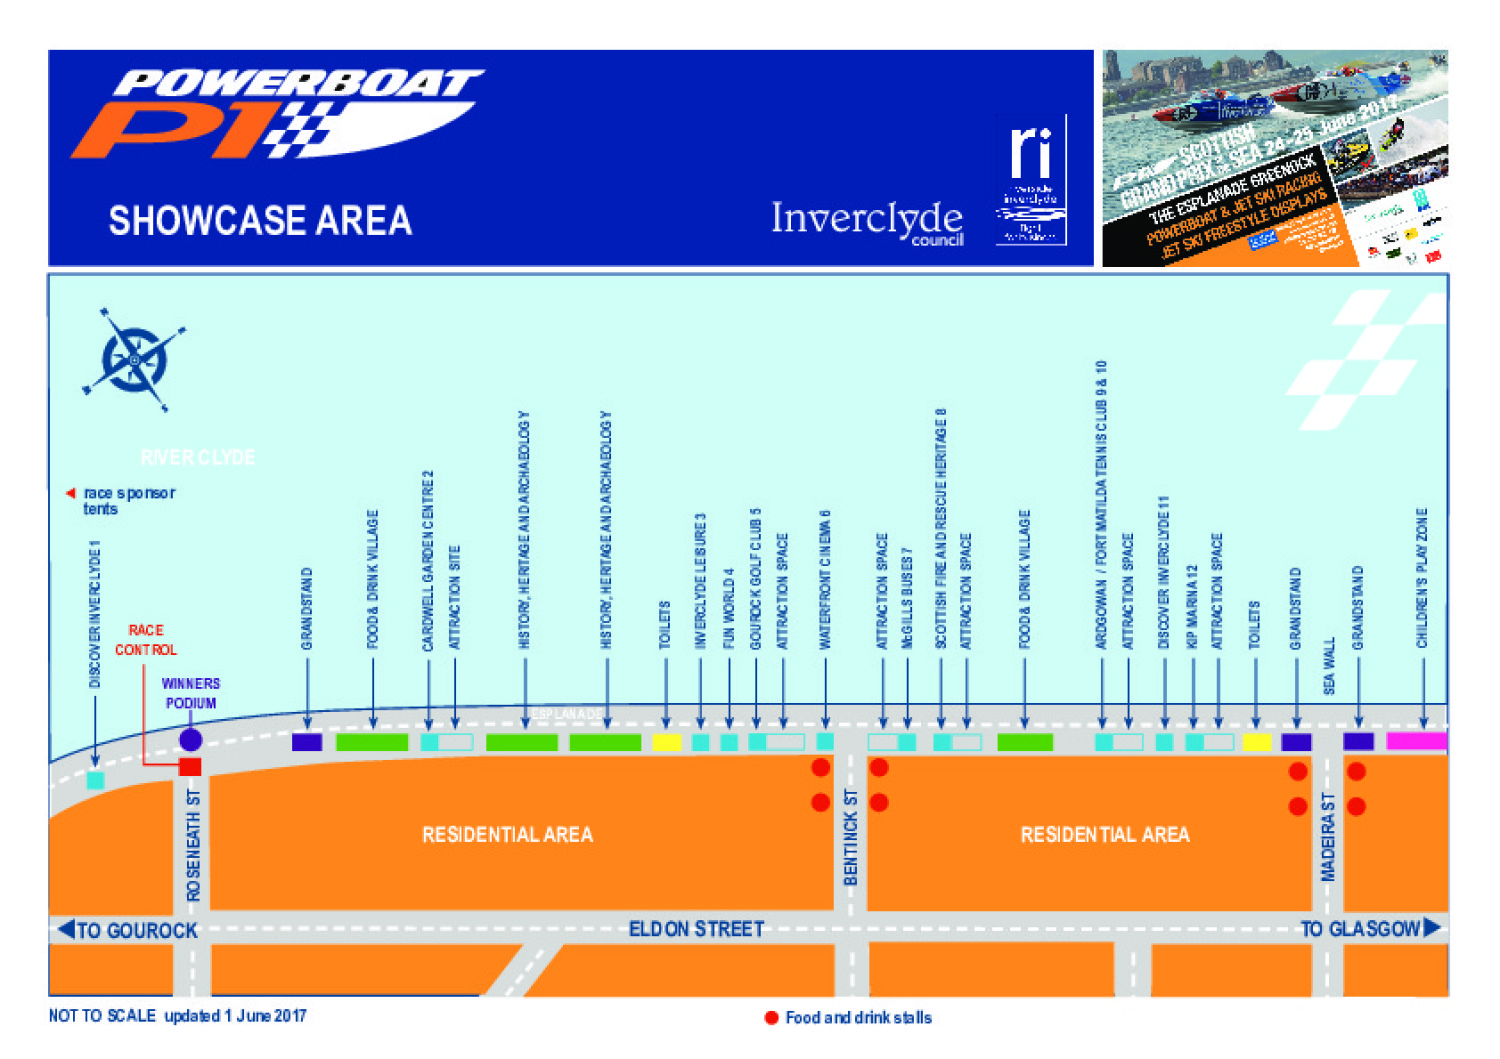 Inverclyde Showcase Map